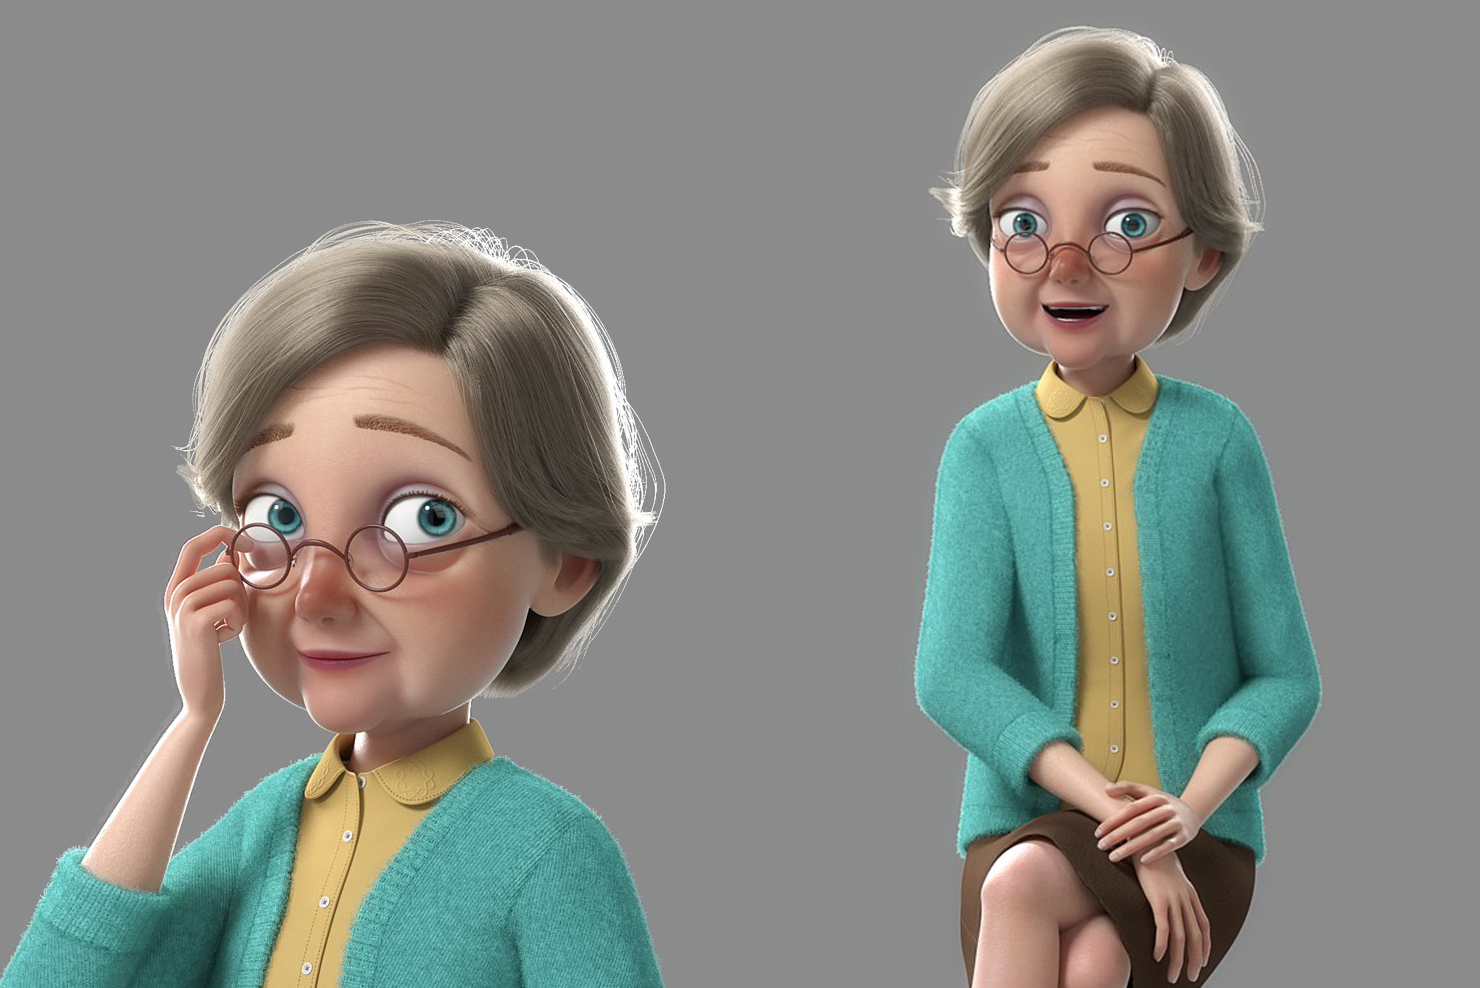 grandmother 3d model rigged turbosquid